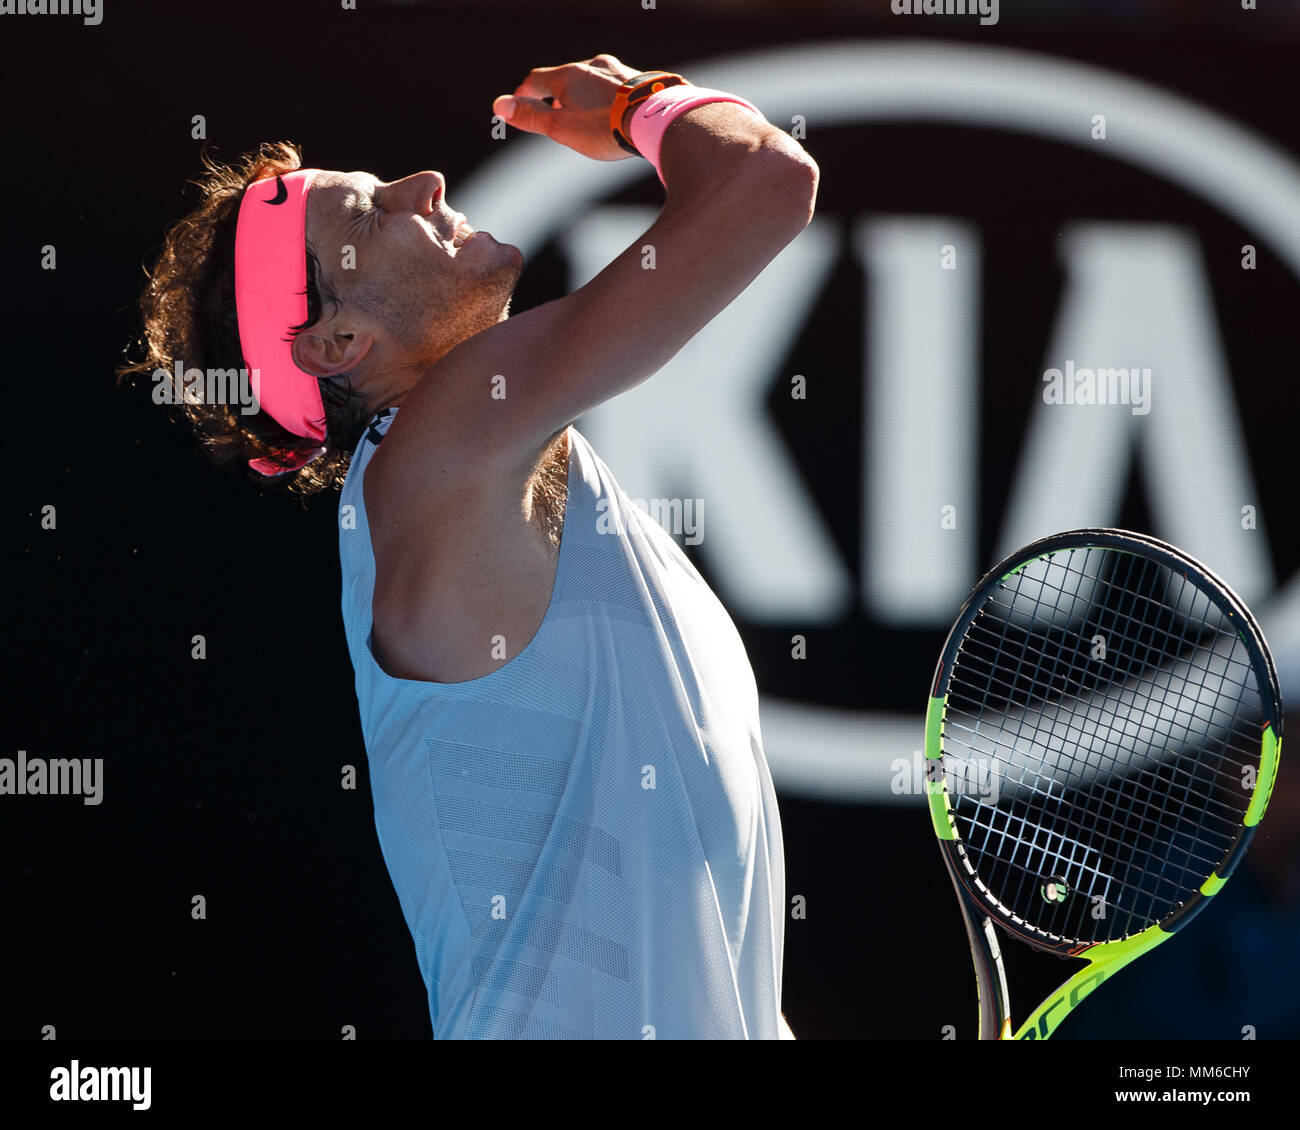 Spanish tennis player Rafael Nadal reacts emotional at the  Australian Open 2018 Tennis Tournament, Melbourne Park, Melbourne, Victoria, Australia. - Stock Image